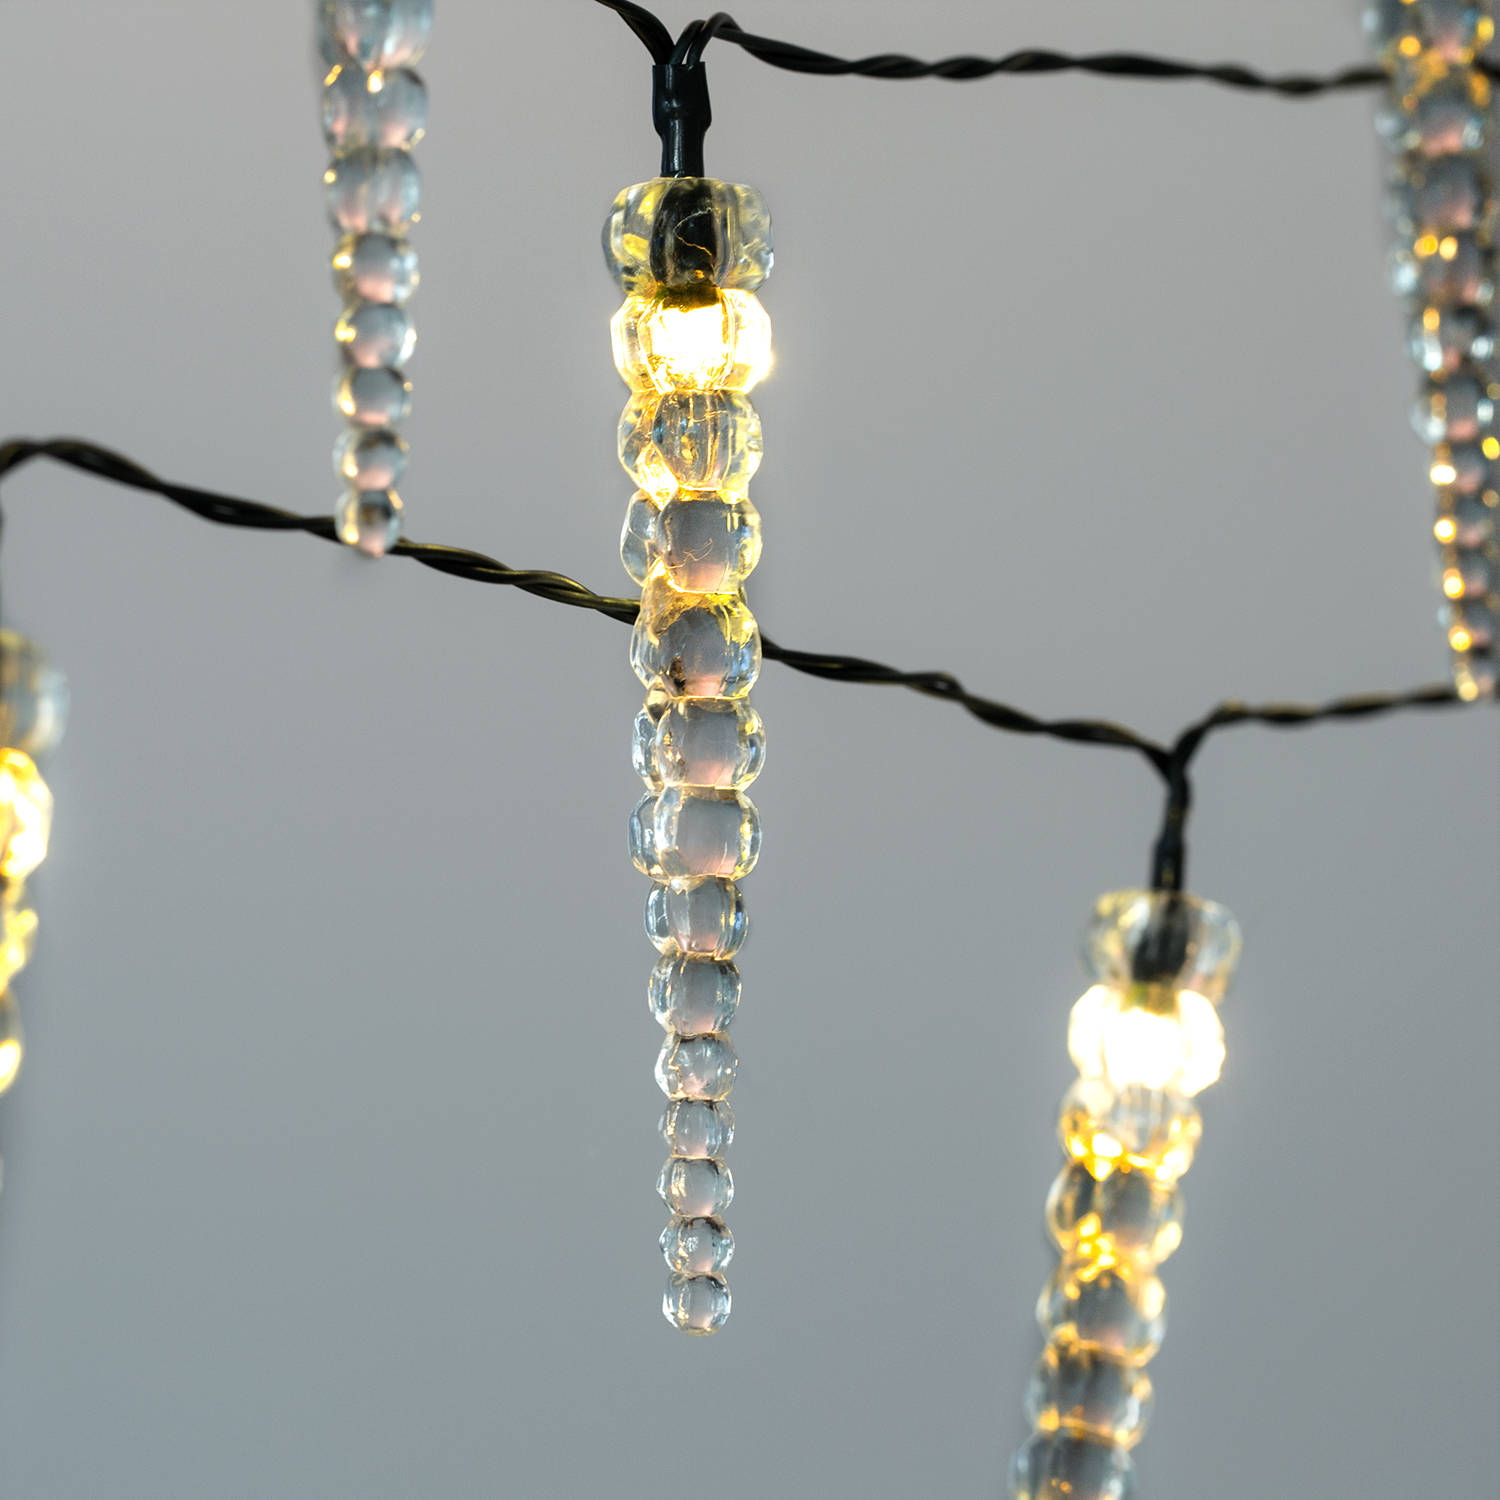 Led Icicle String Lights : Lights.com String Lights Christmas Lights Winter Icicle 20 LED Battery String Lights, Set of 2